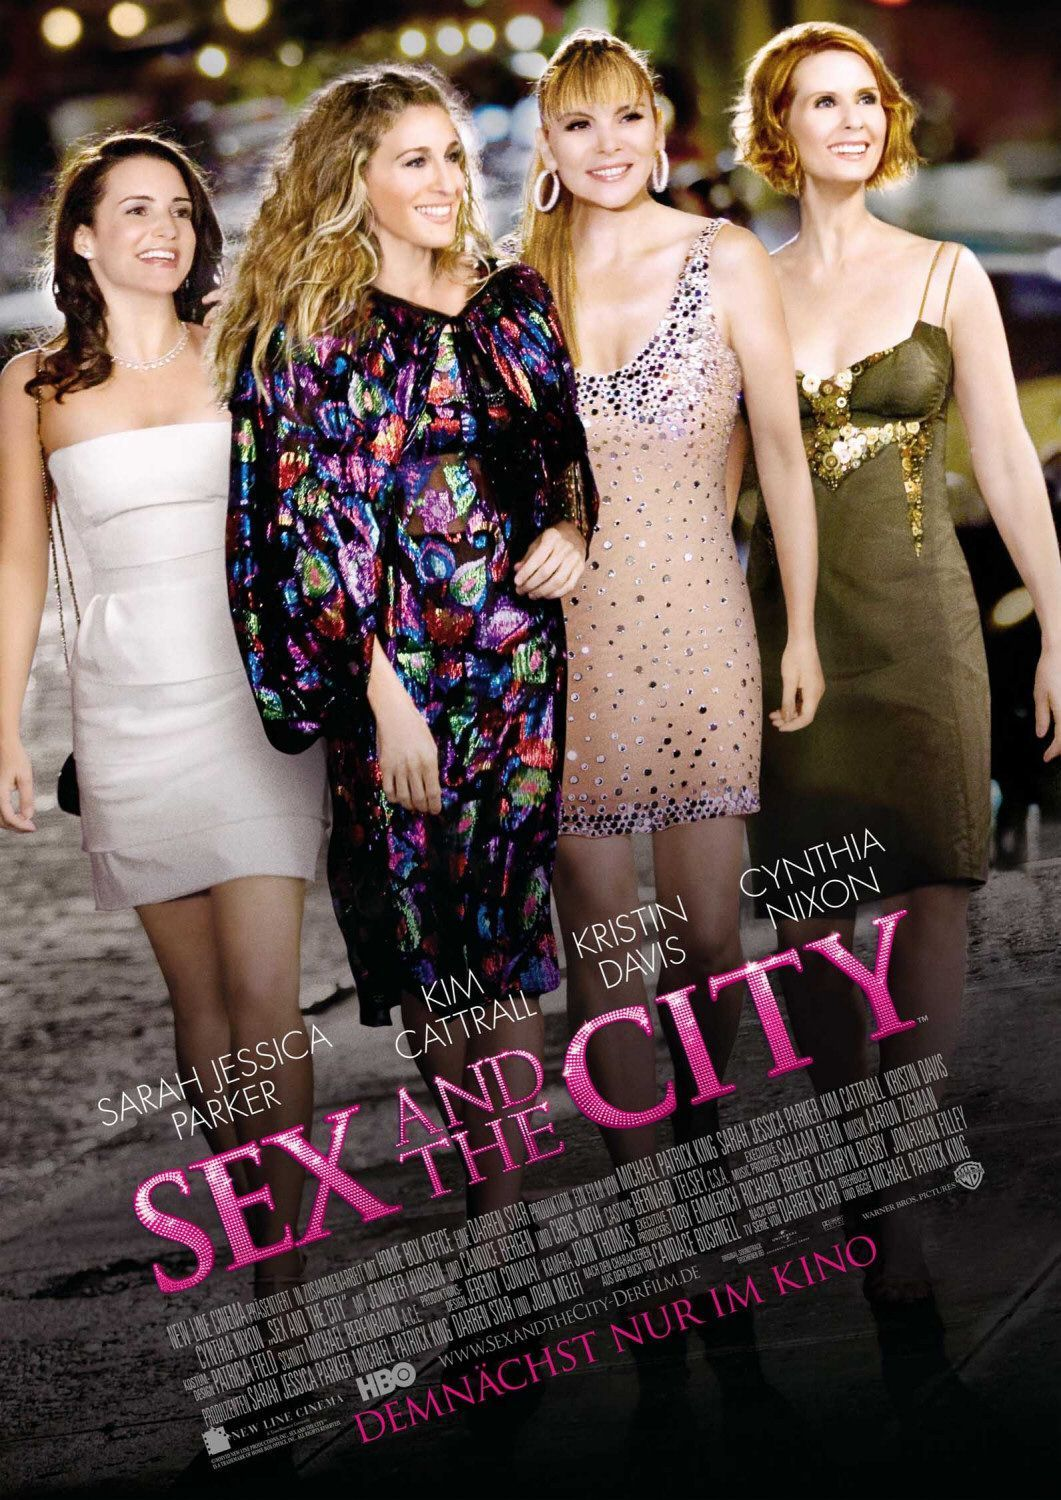 sex and the city movie nettdate